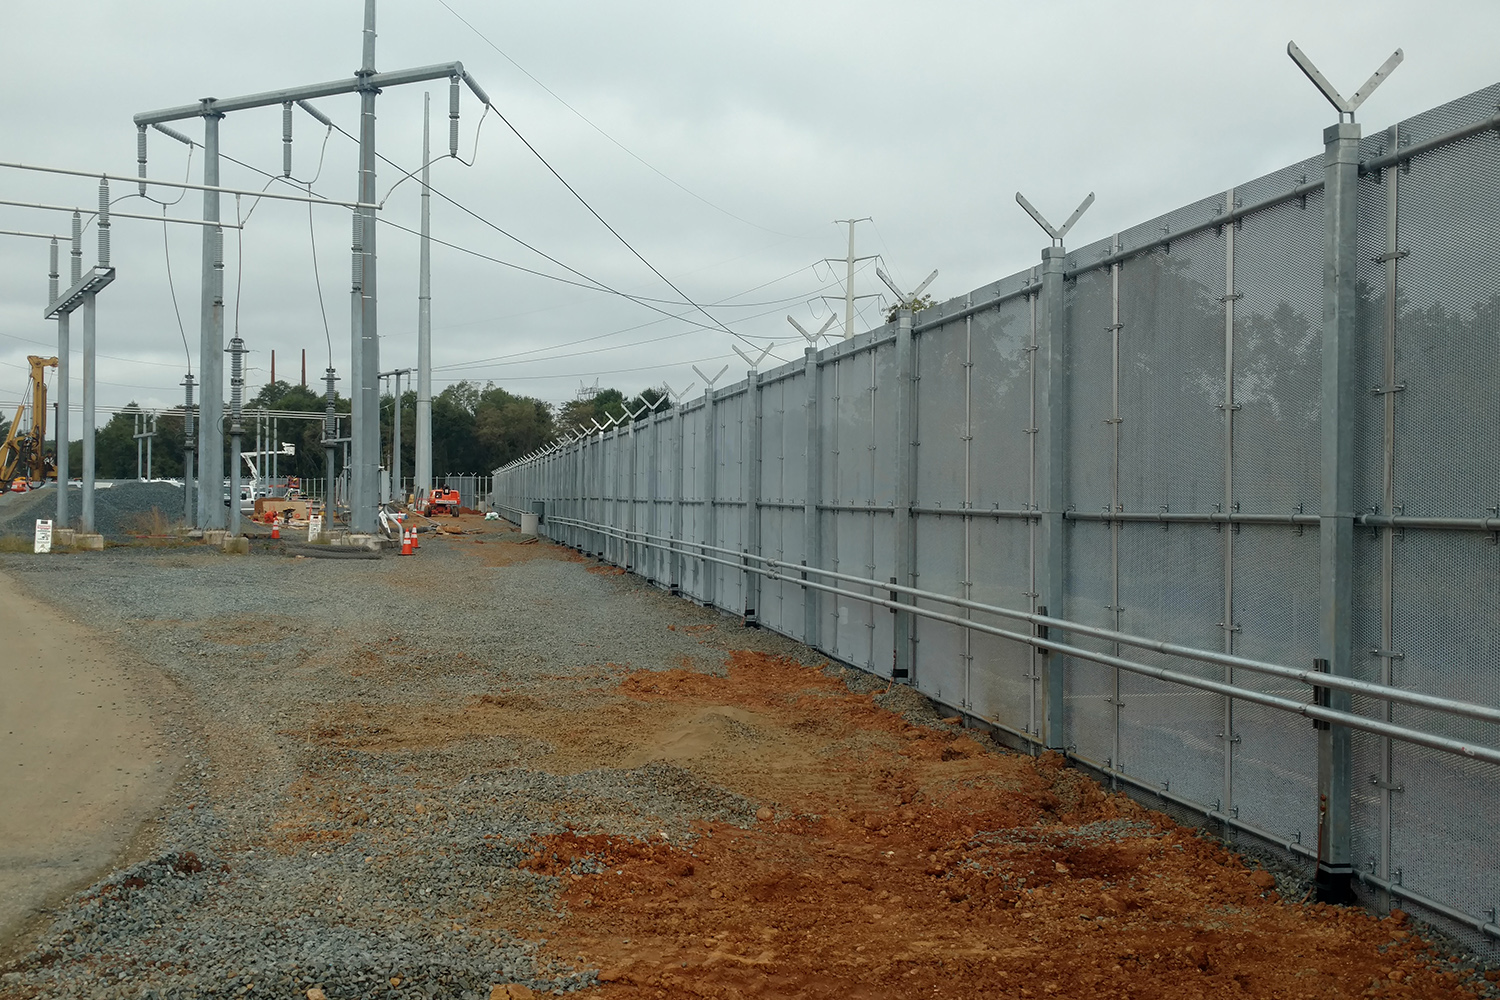 aldridge-electric-top-electrical-utility-infrastructure-construction-perimeter-fencing-project-work-contractor-nationwide.jpg